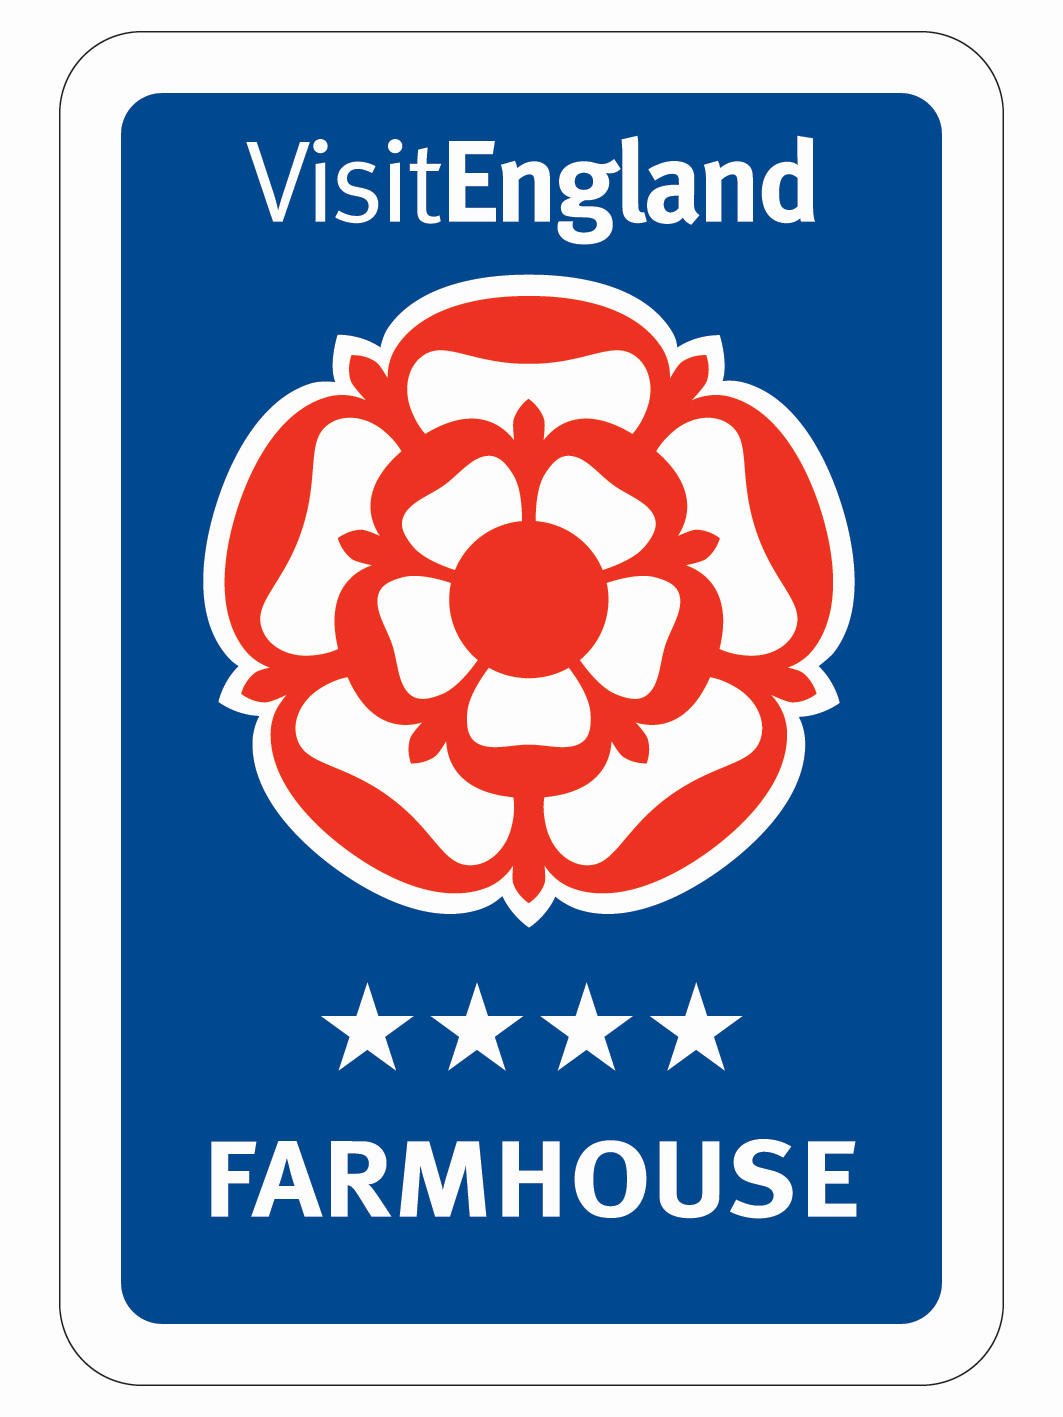 visitengland 4 star farmhouse 2016